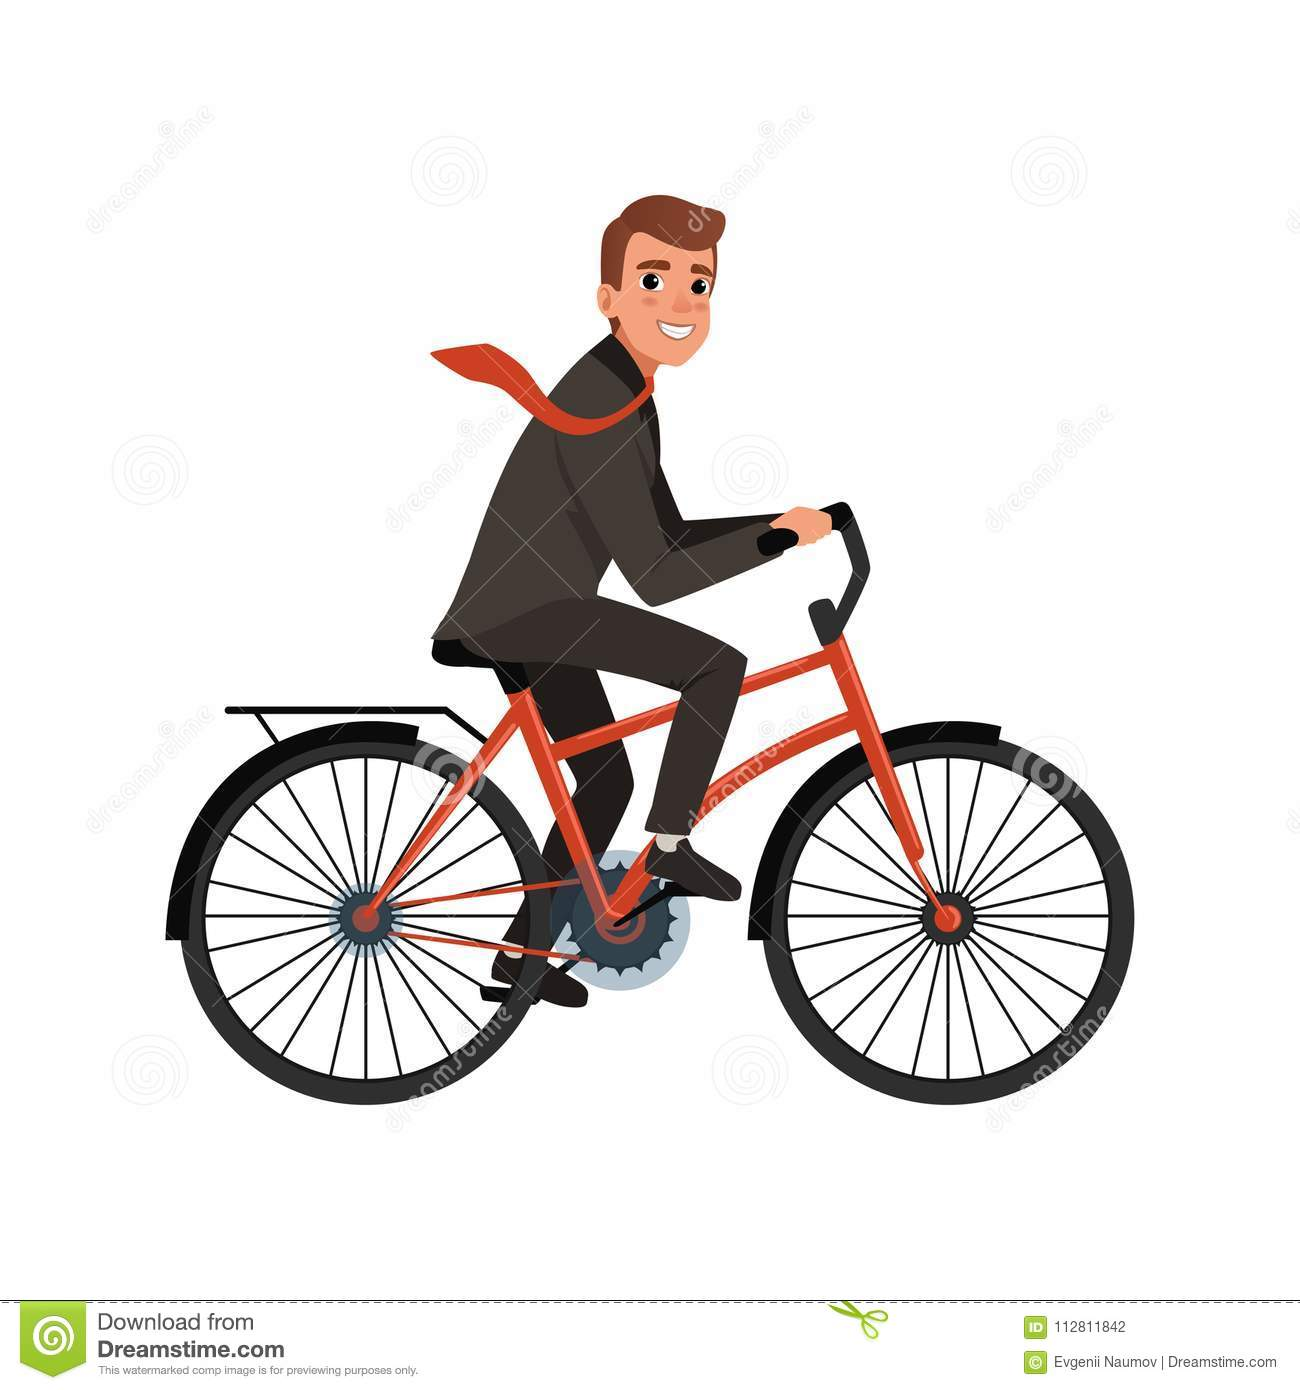 Smiling business man riding bicycle to work. Eco-friendly transportation. Cartoon character of young office worker in